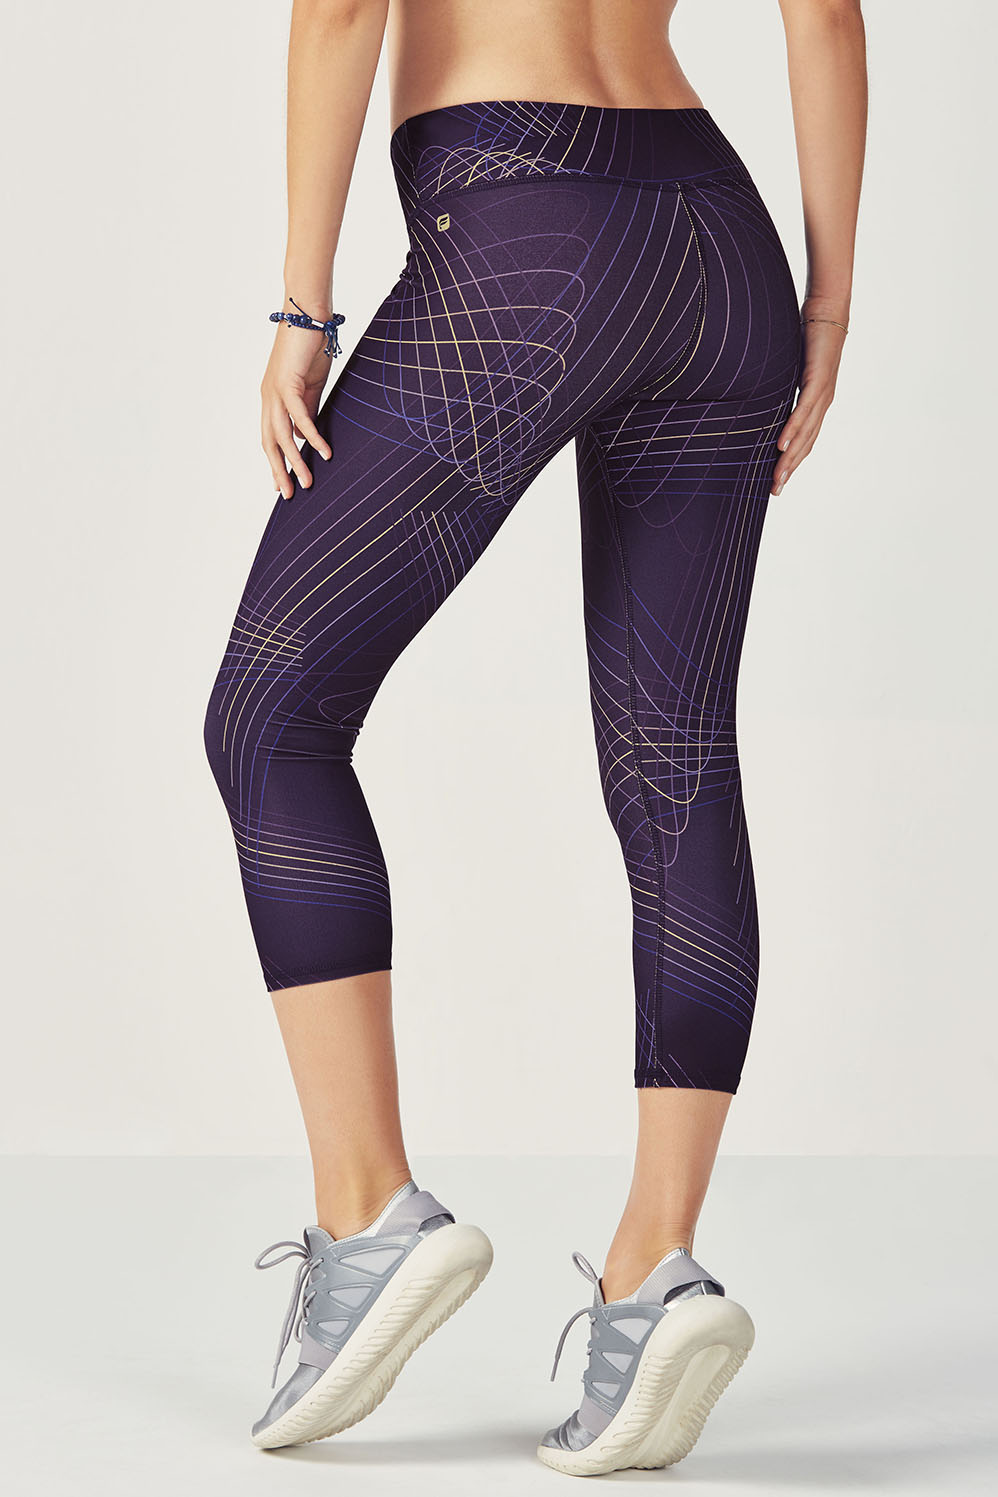 Yoga Capris, Running Capris & Workout Capris for Women | Fabletics